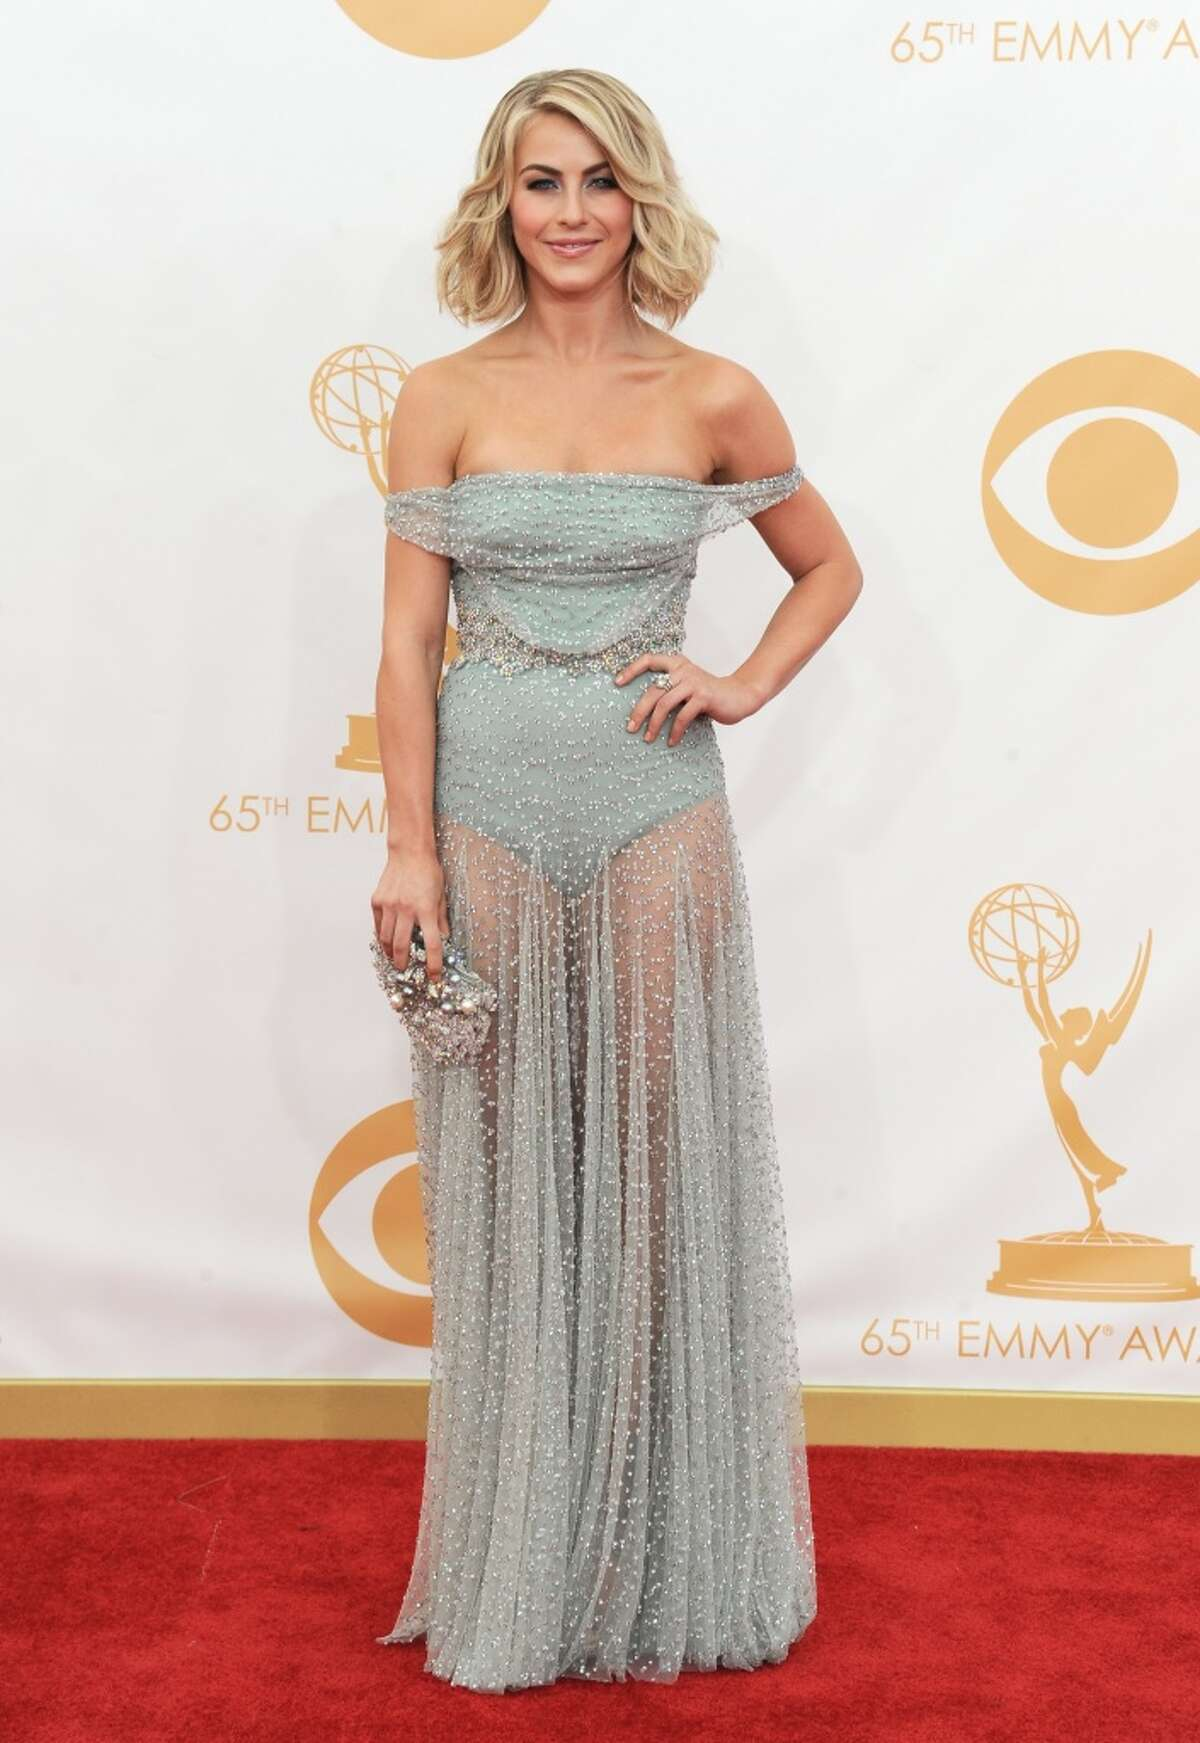 Julianne Hough: is she wearing Depends under her gown?